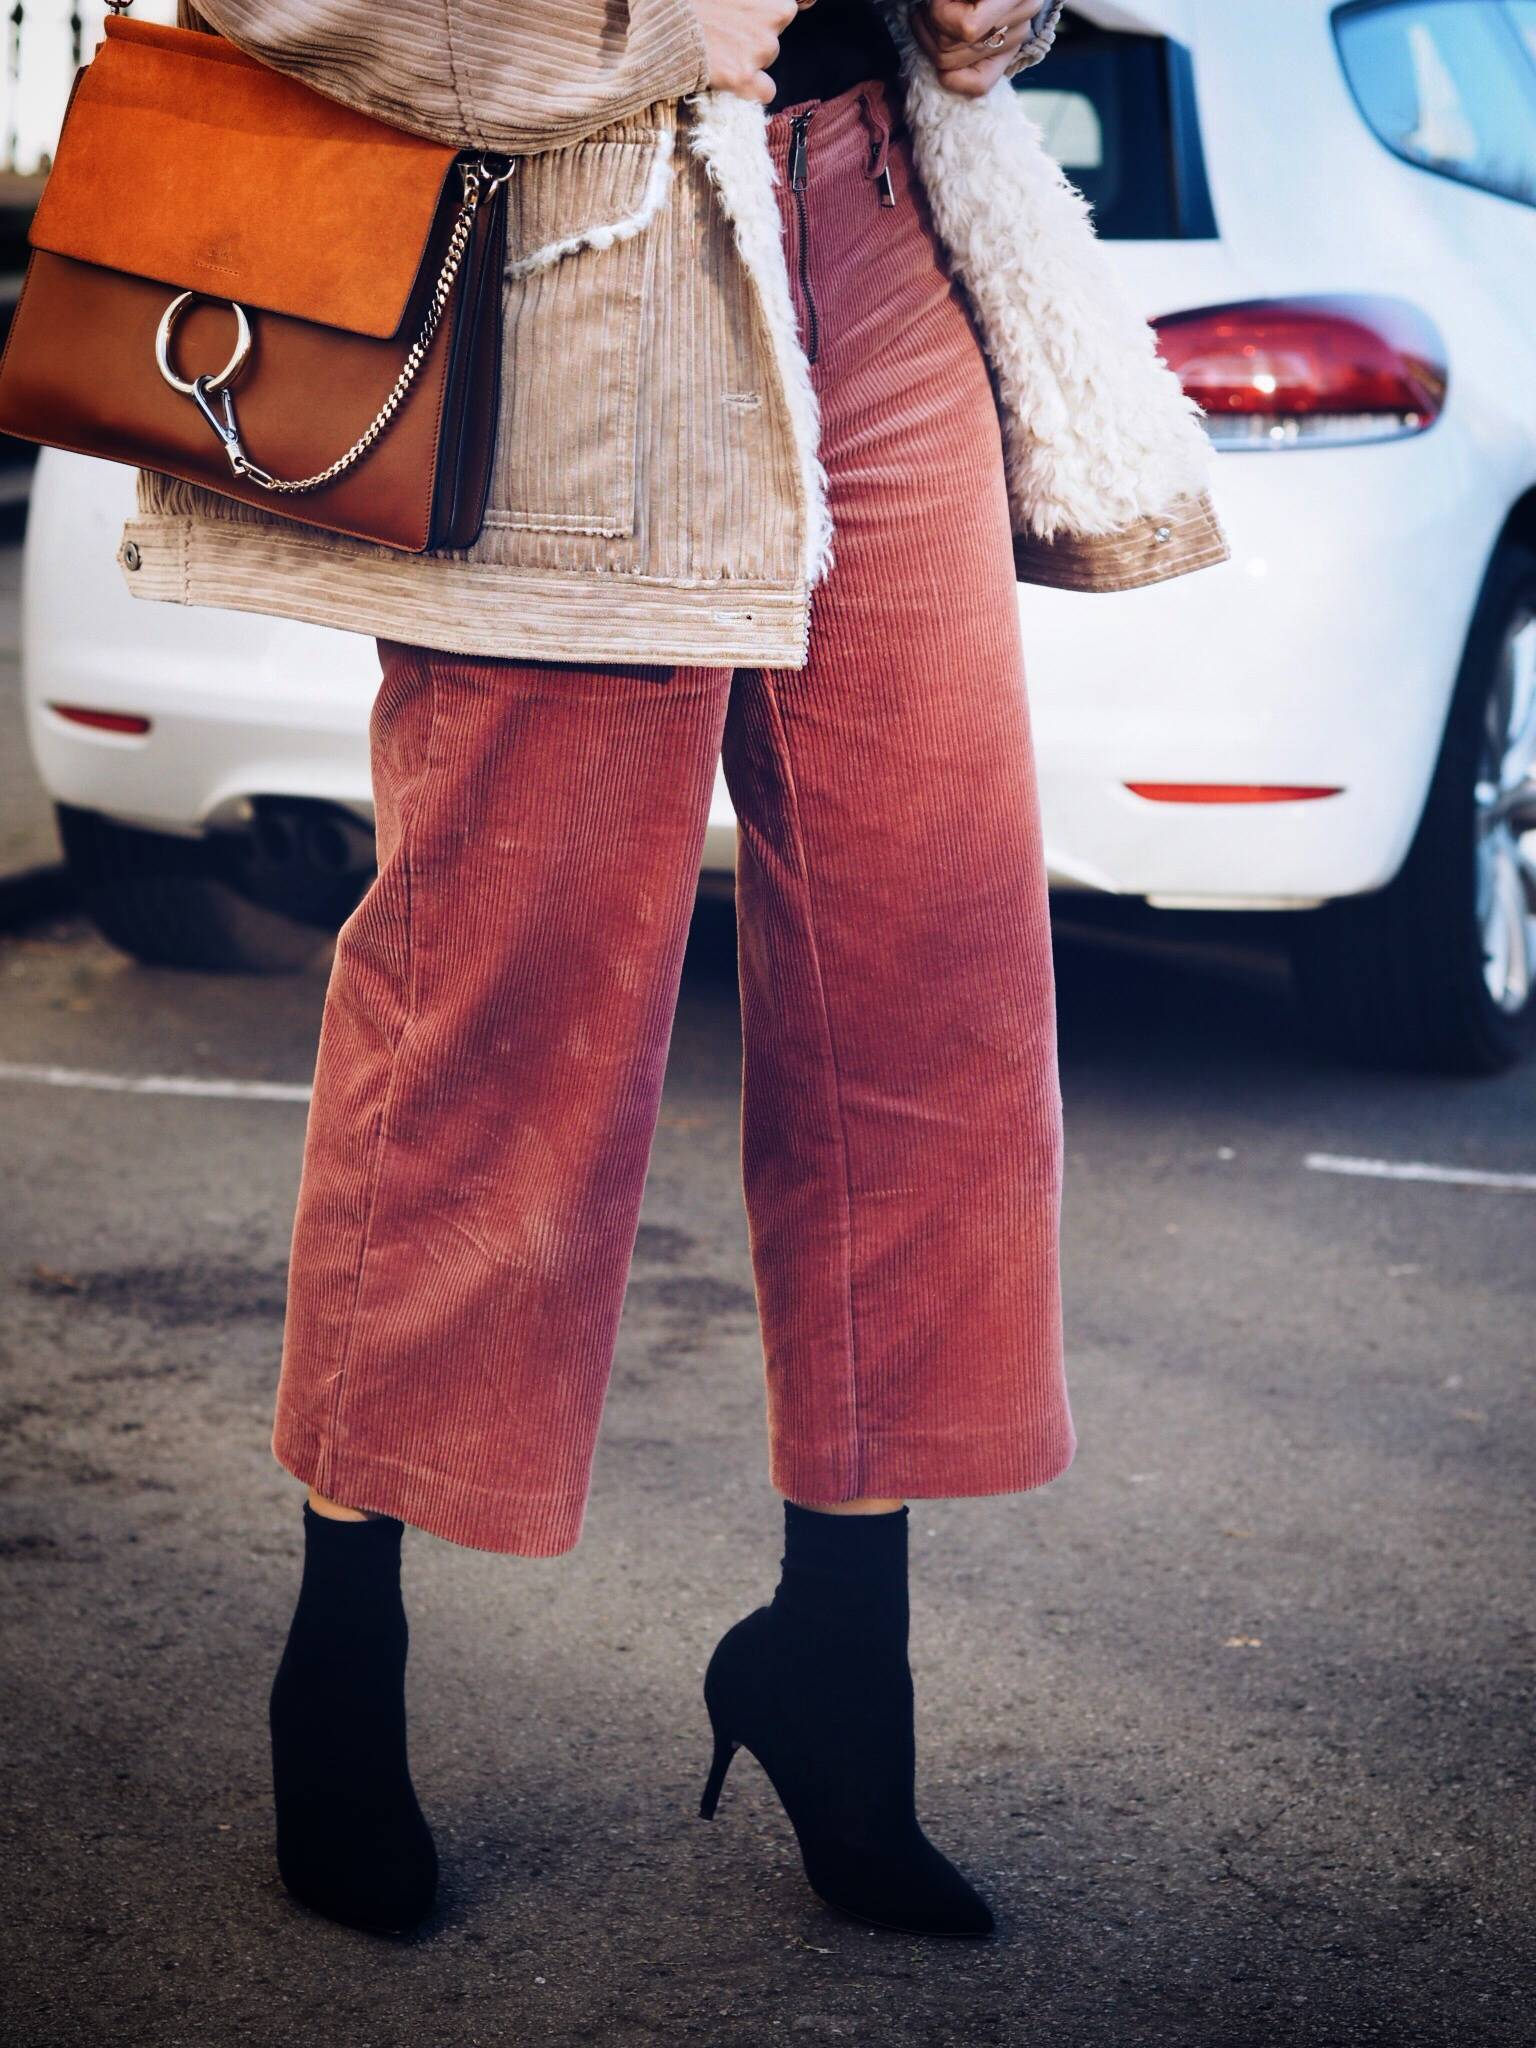 CORDUROY-TREND-AND-HOW-TO-WEAR-IT-STREET-STYLE-LAFOTKA-BLOGGER